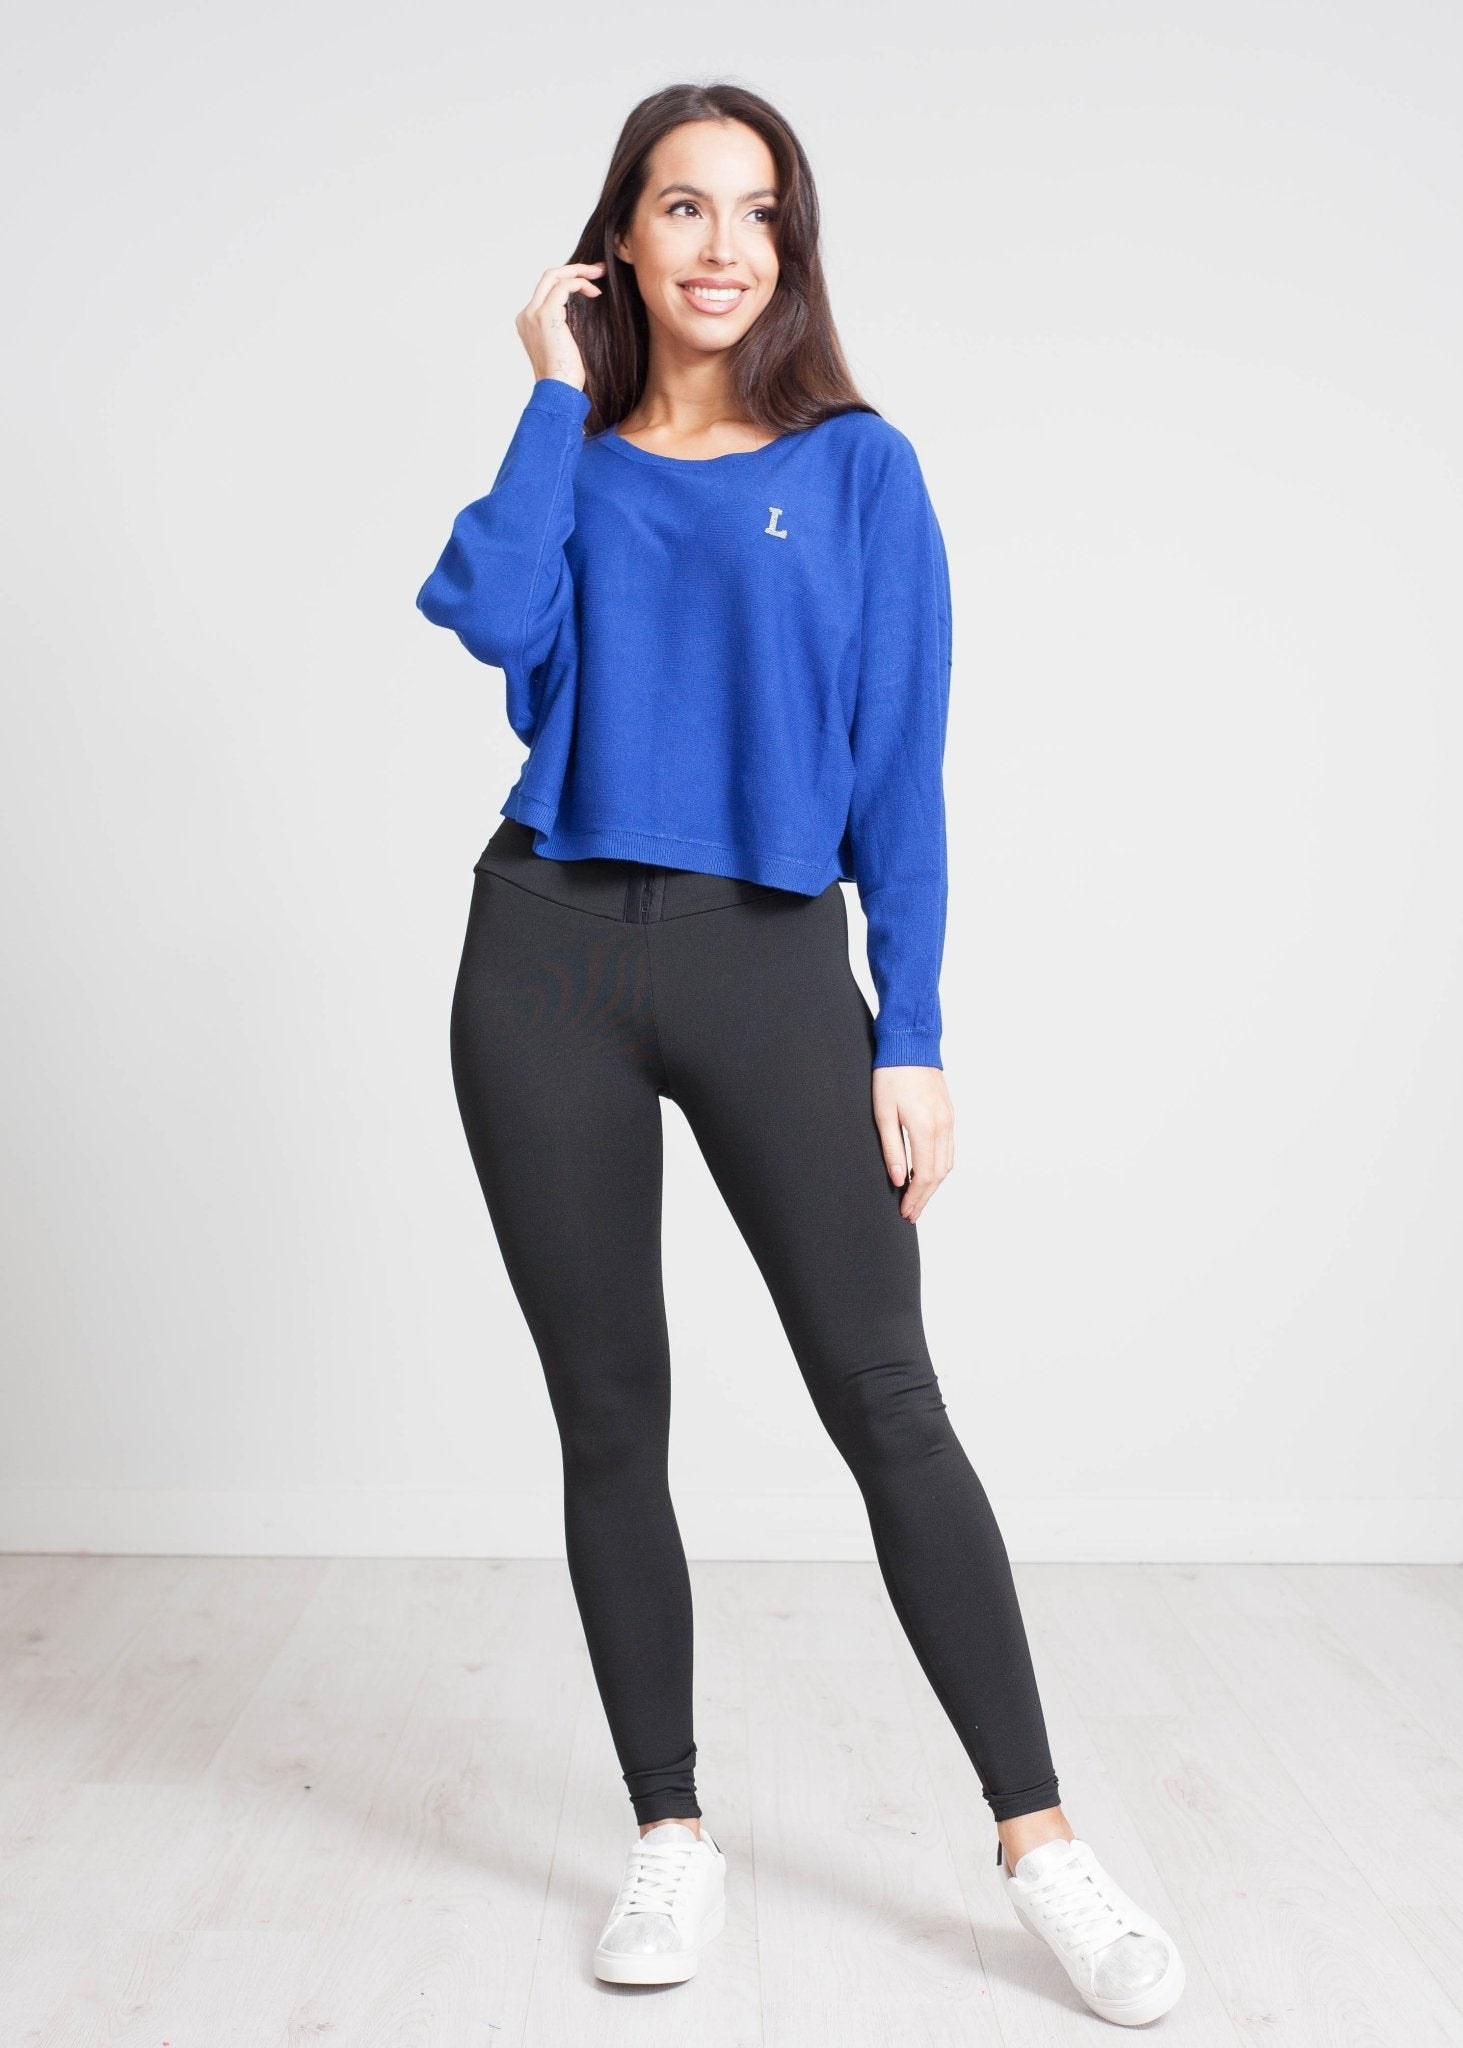 Becca Embellished Knit In Royal Blue - The Walk in Wardrobe